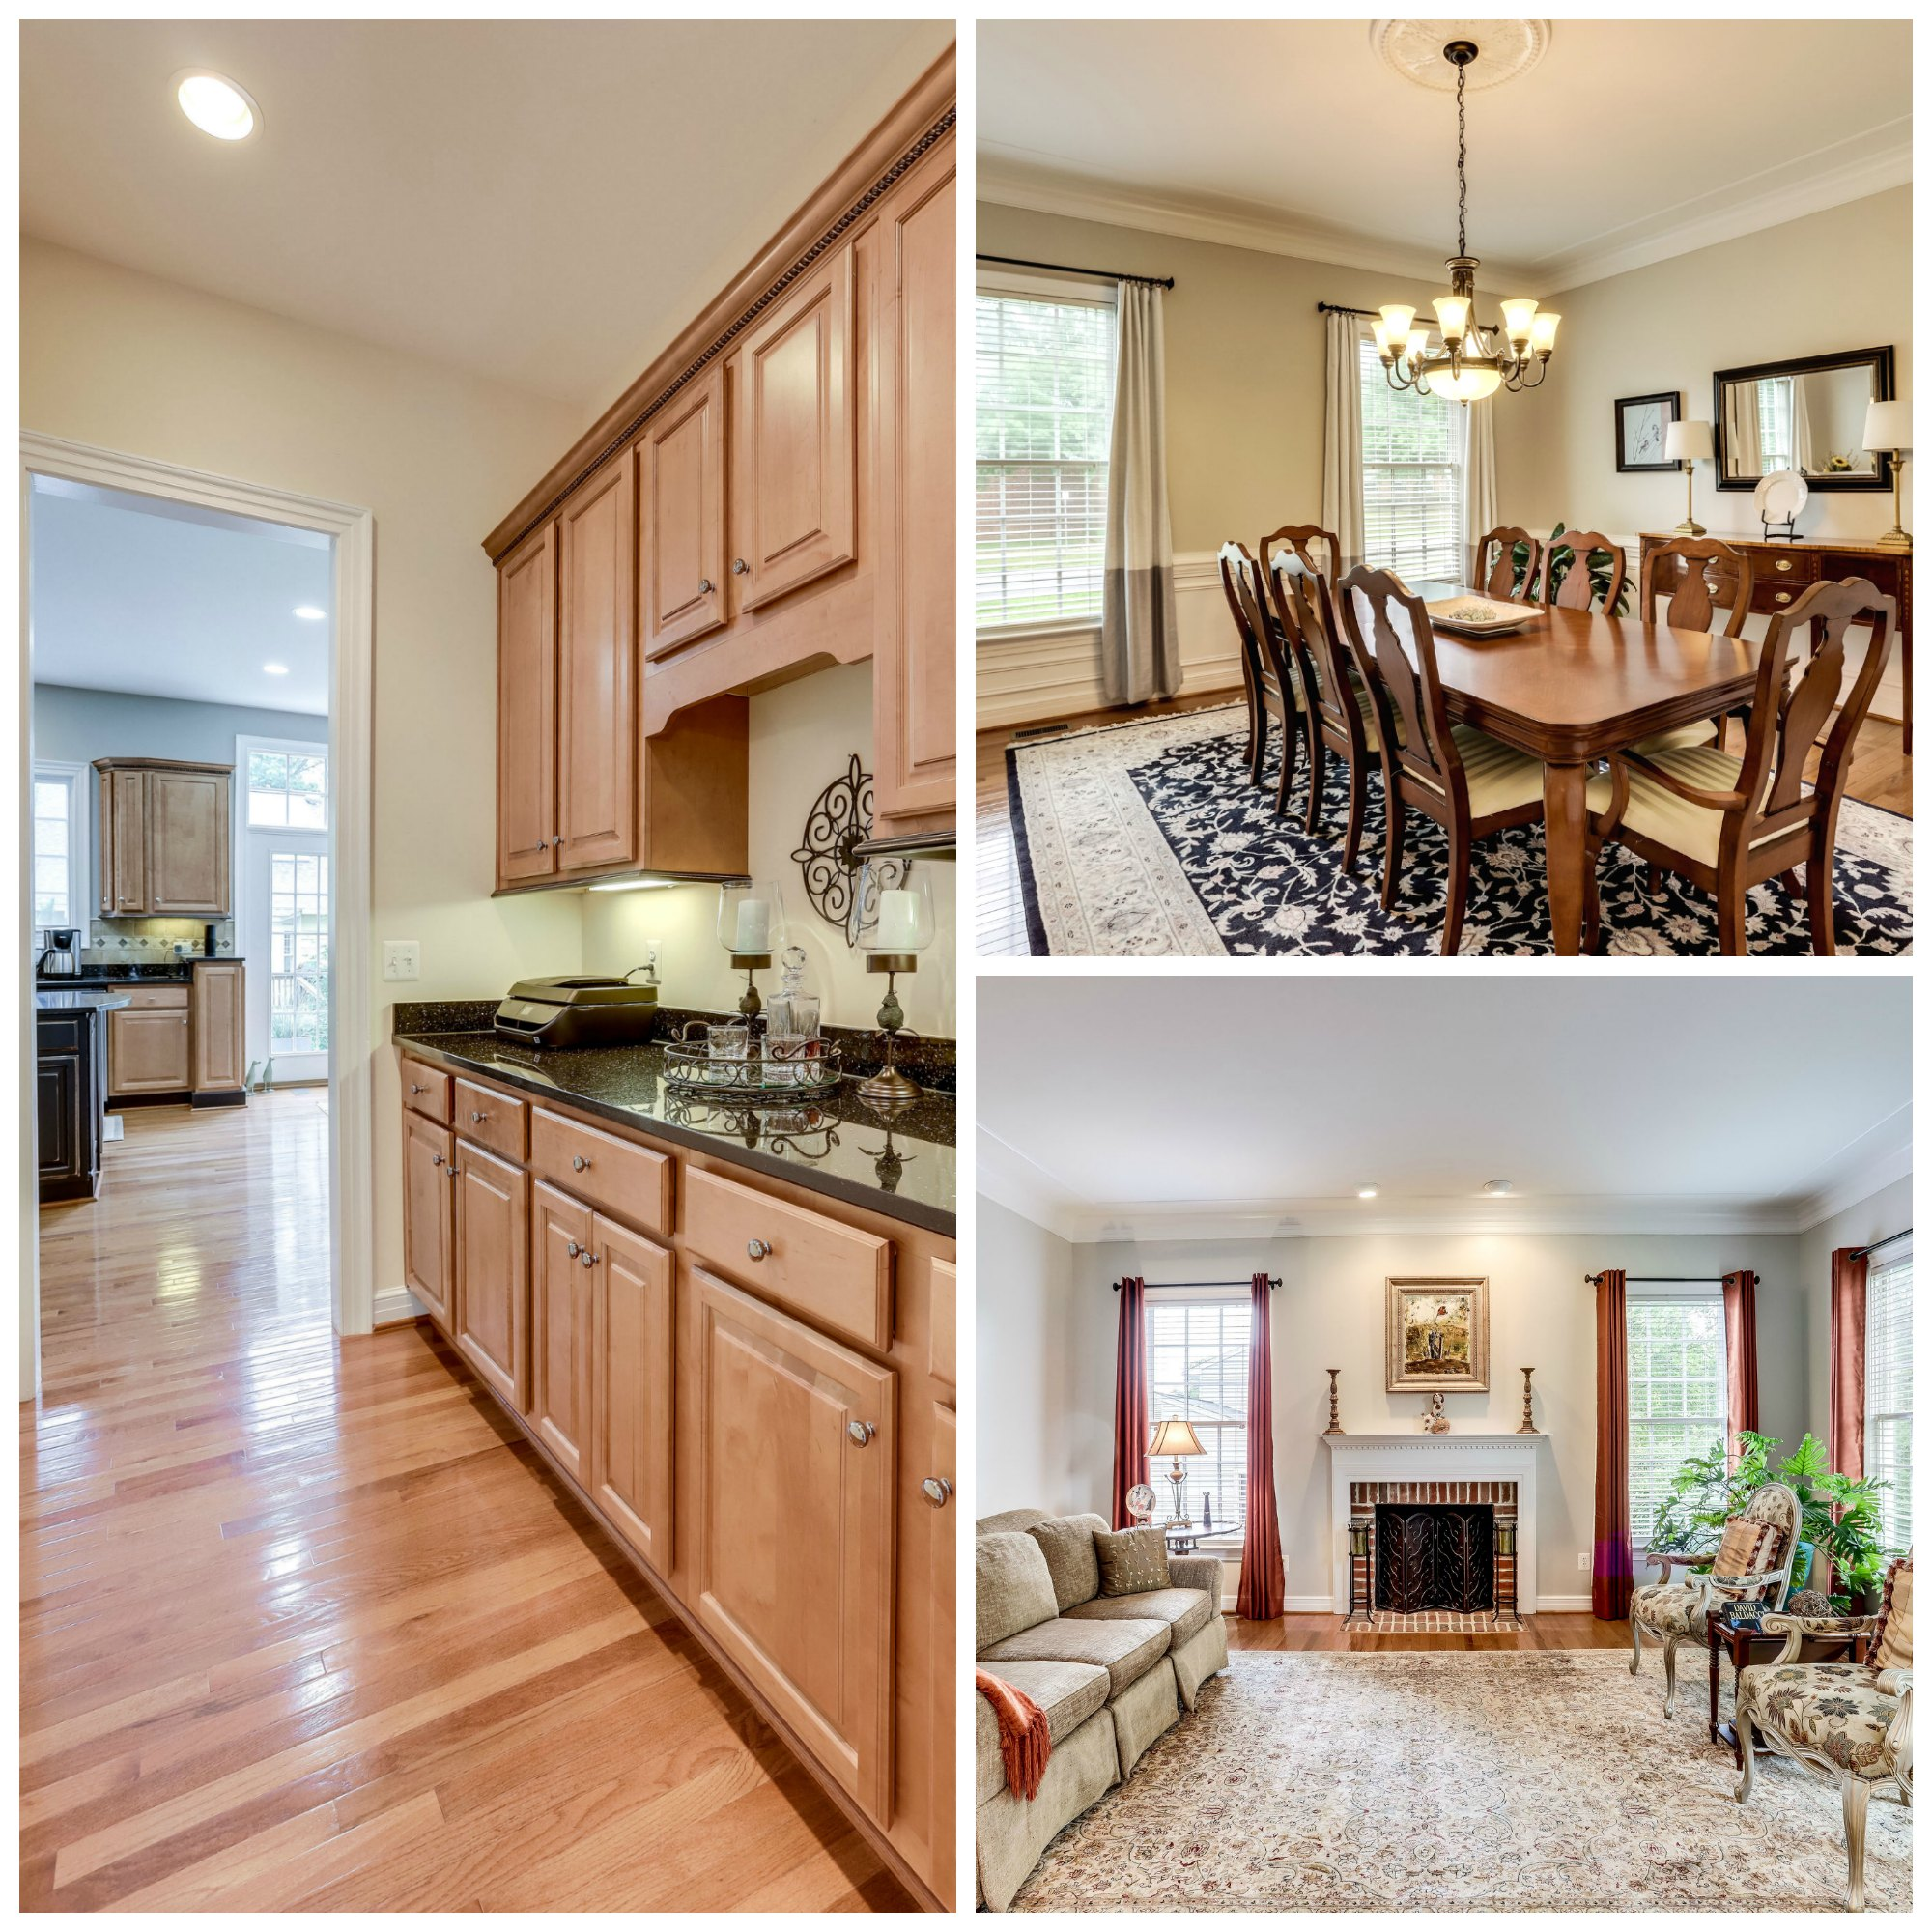 904 Locust St, Herndon- Living and Dining Room